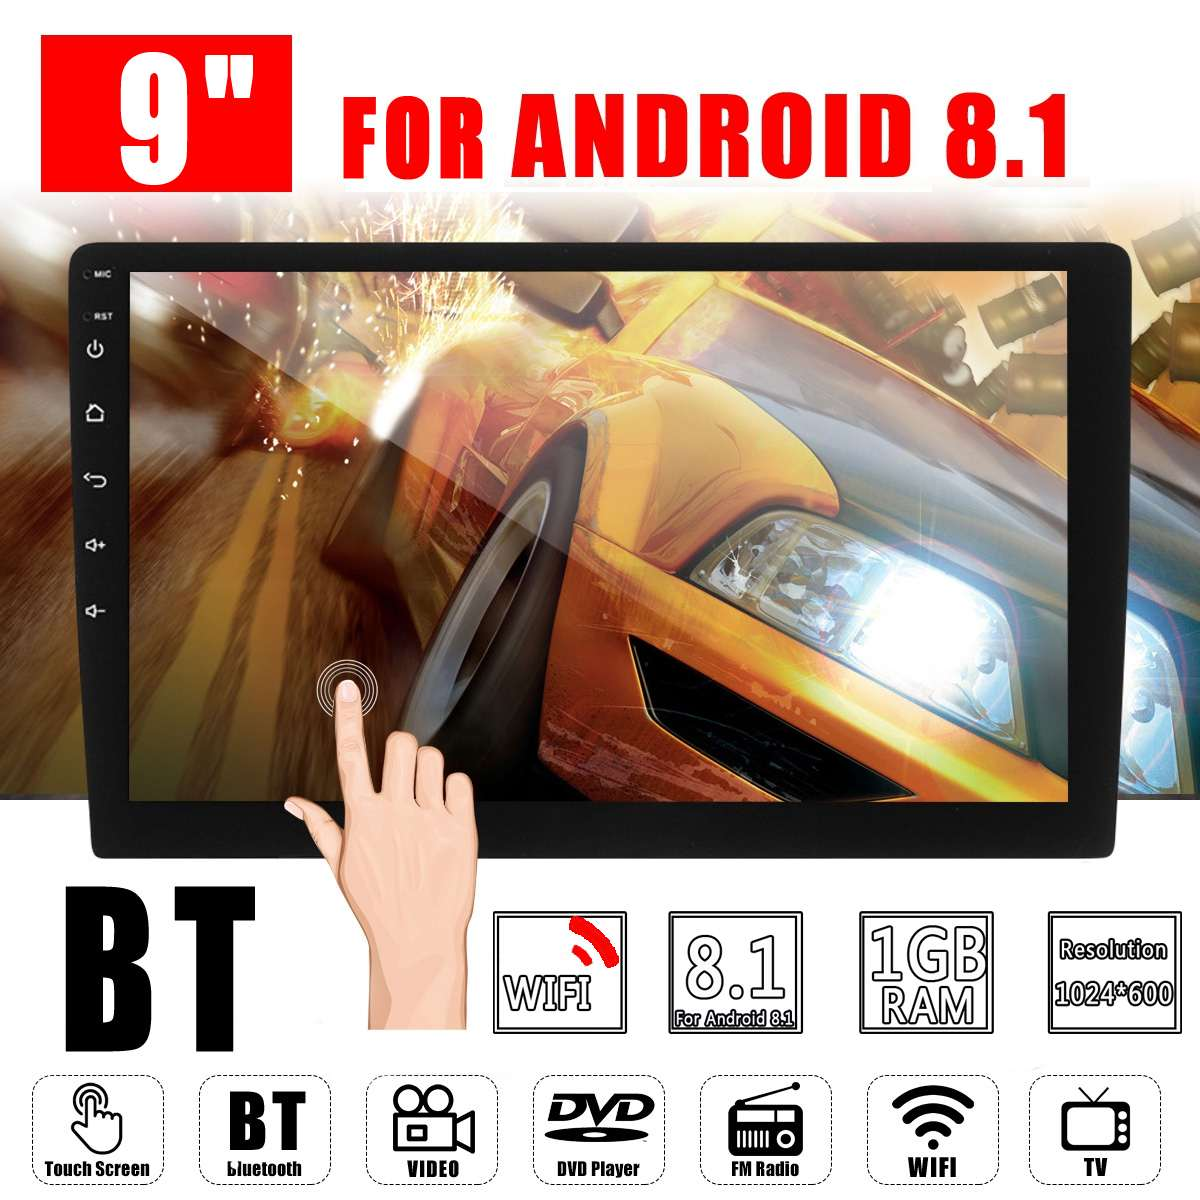 Car Multimedia Player 9 Android 8.0 Car Stereo 2DIN bluetooth WIFI GPS Nav Quad Core Radio Video MP5 Player support 2D/3D MapCar Multimedia Player 9 Android 8.0 Car Stereo 2DIN bluetooth WIFI GPS Nav Quad Core Radio Video MP5 Player support 2D/3D Map